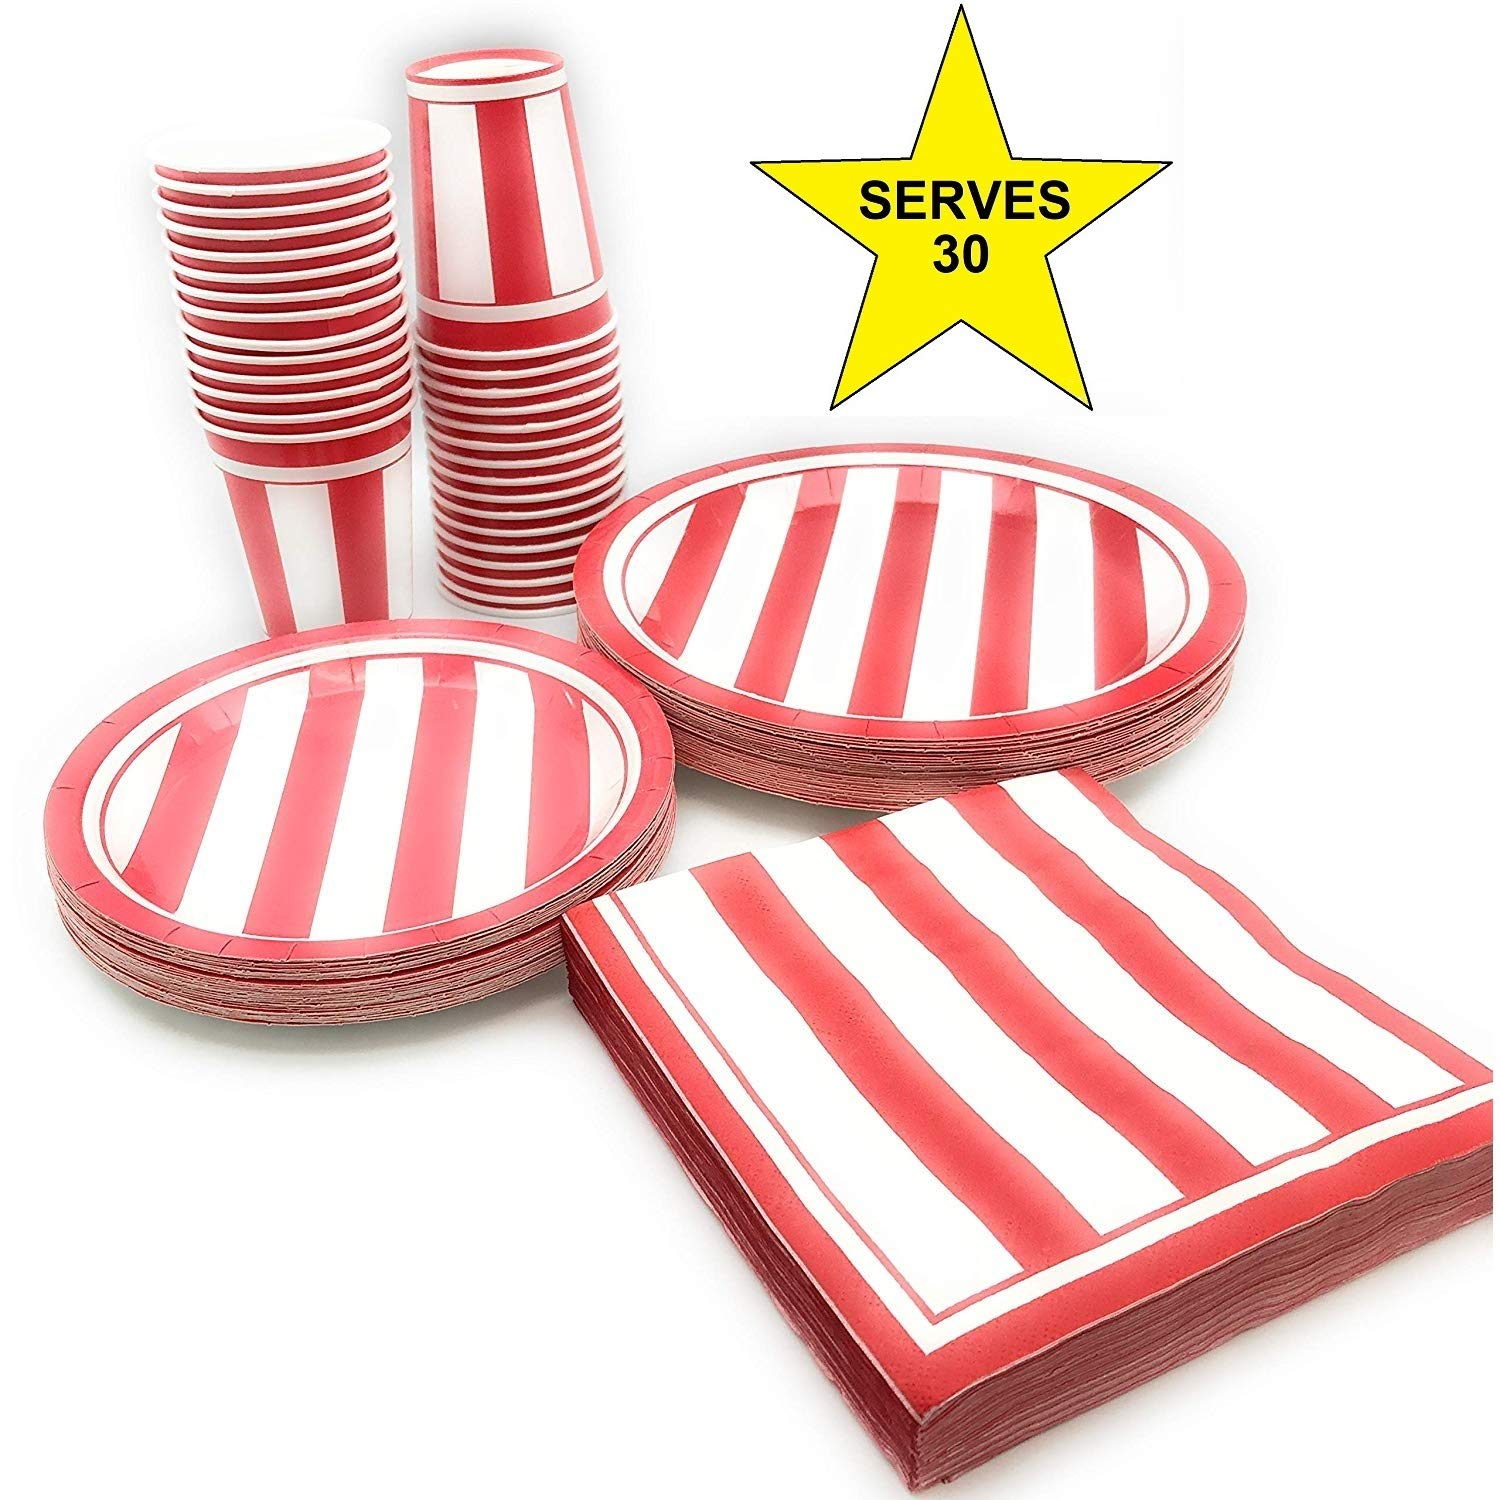 Serves 30 | Complete Party Pack | Red & White Stripes | 9'' Dinner Paper Plates | 7'' Dessert Paper Plates | 9 oz Cups | 3 Ply Napkins | Carnival Party Theme